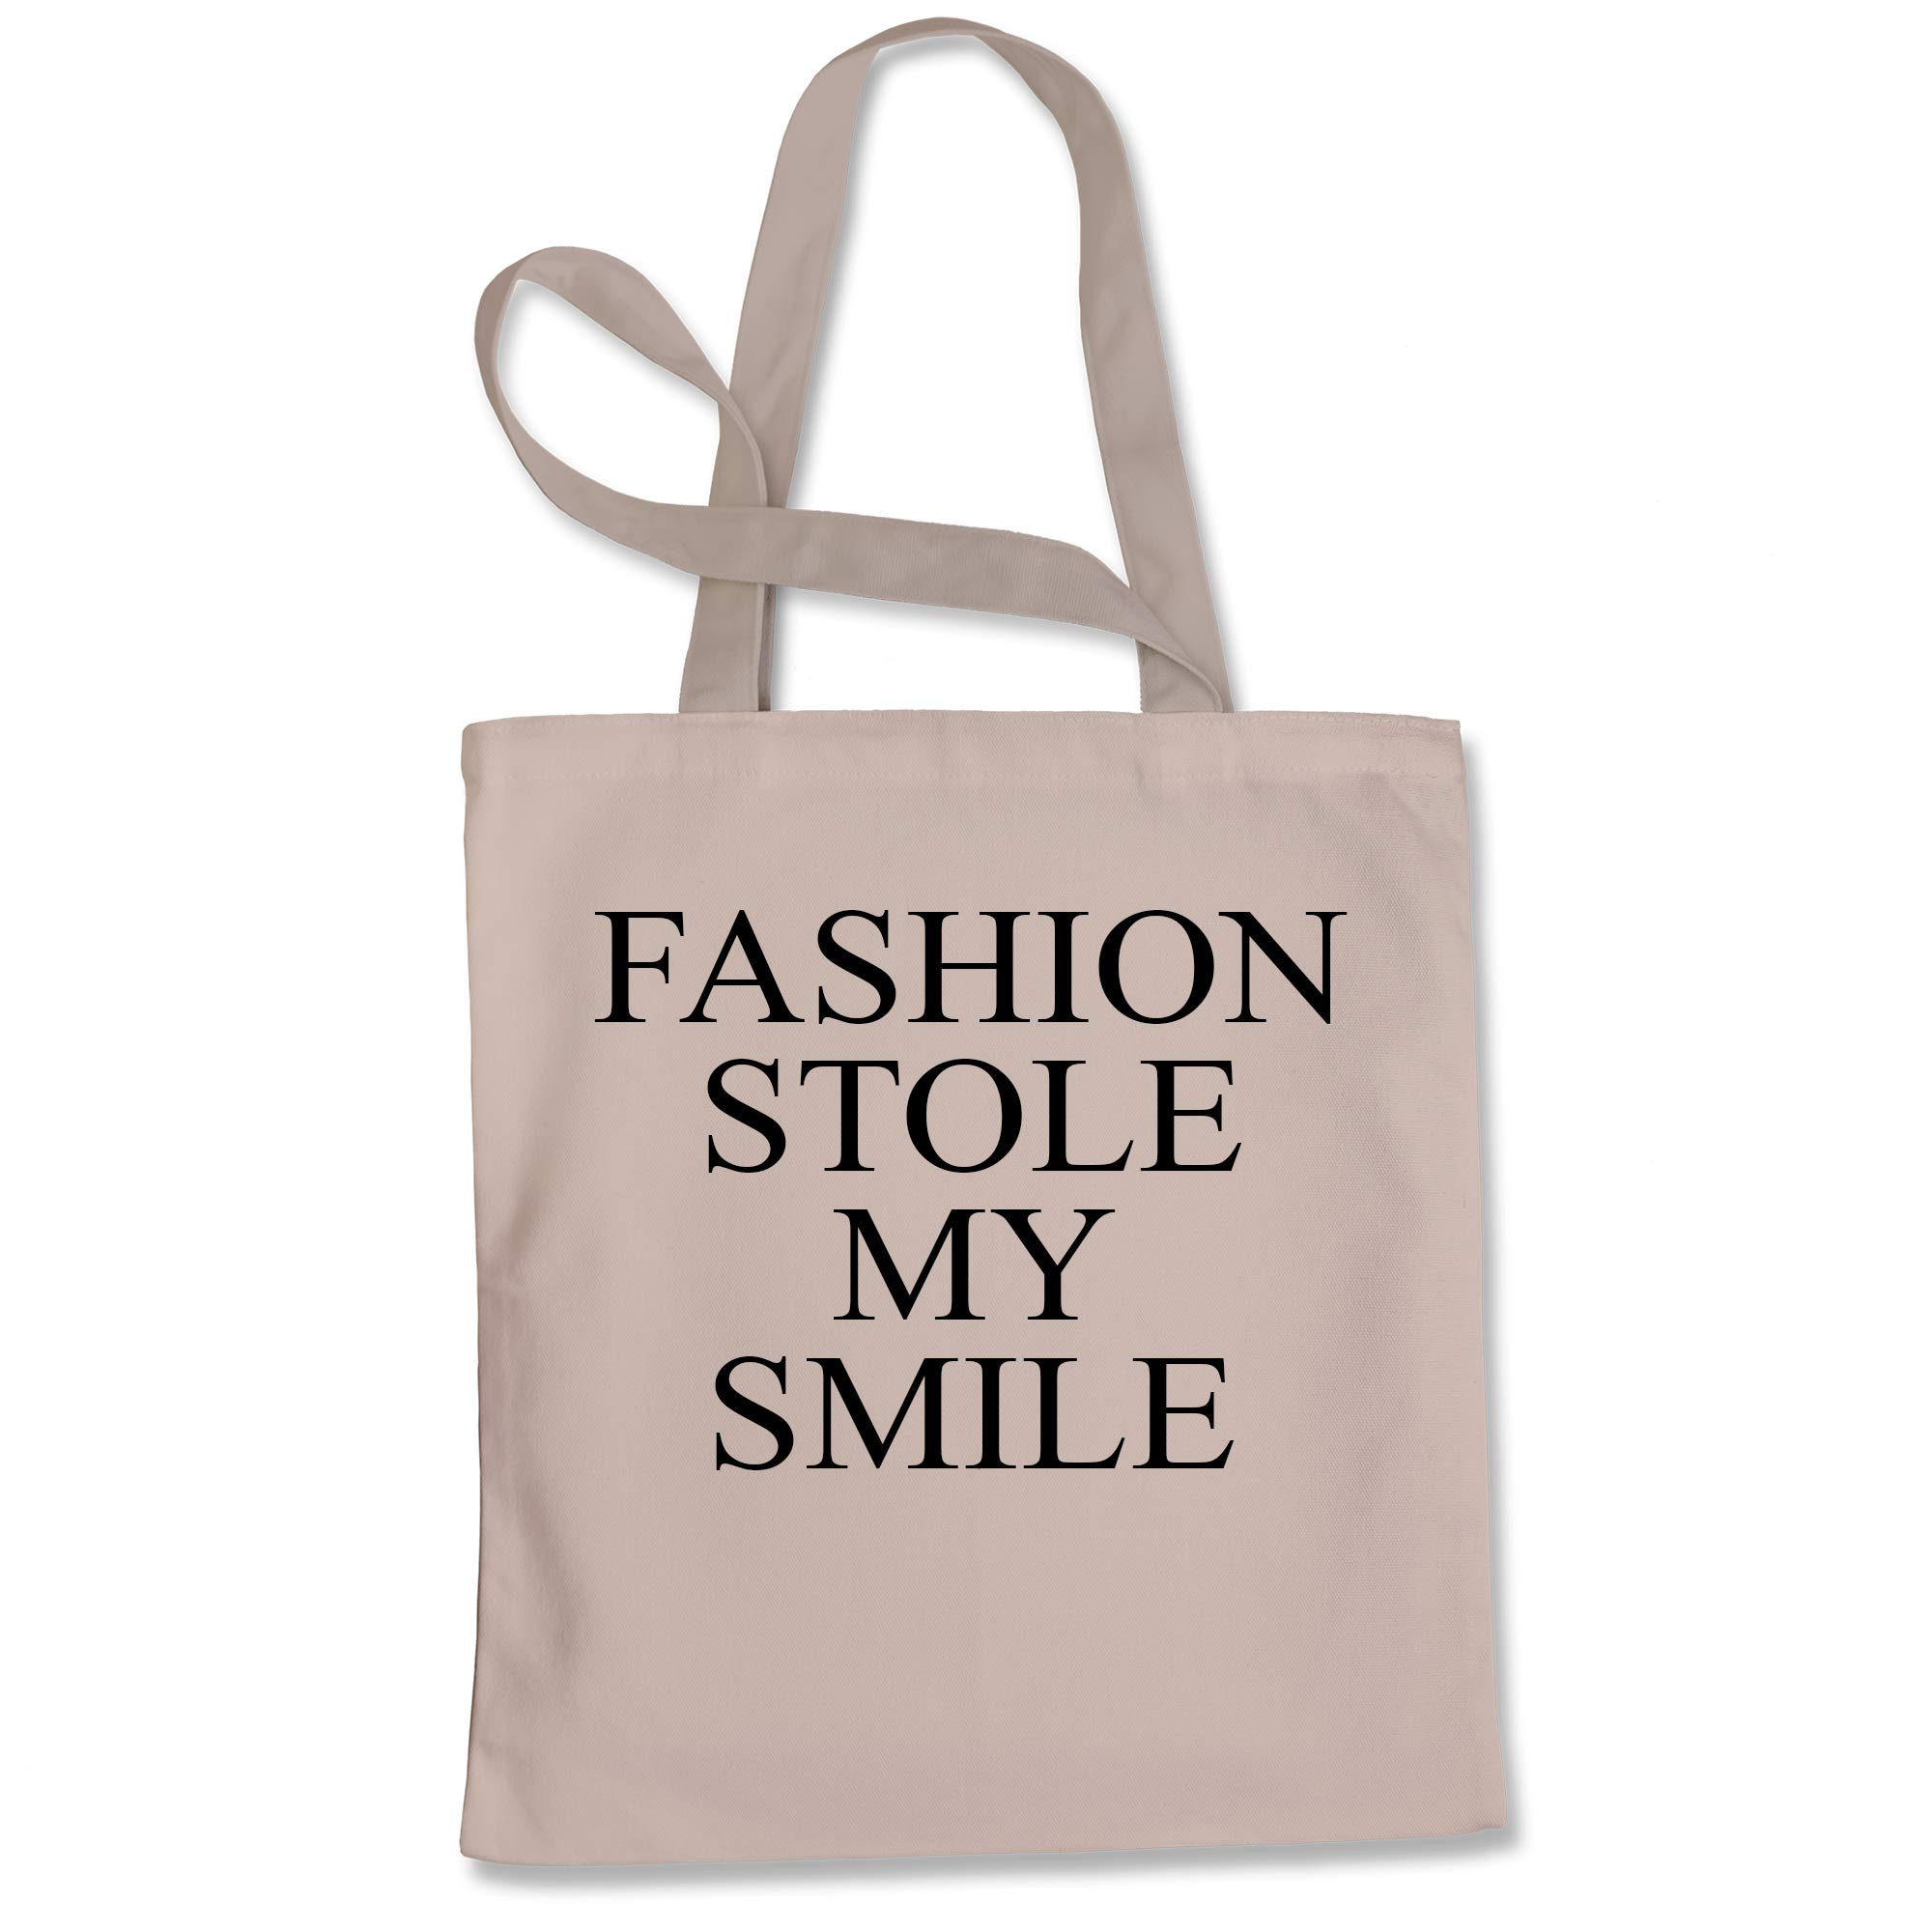 Tote Bag Fashion Stole My Smile Victoria Natural Shopping Bag